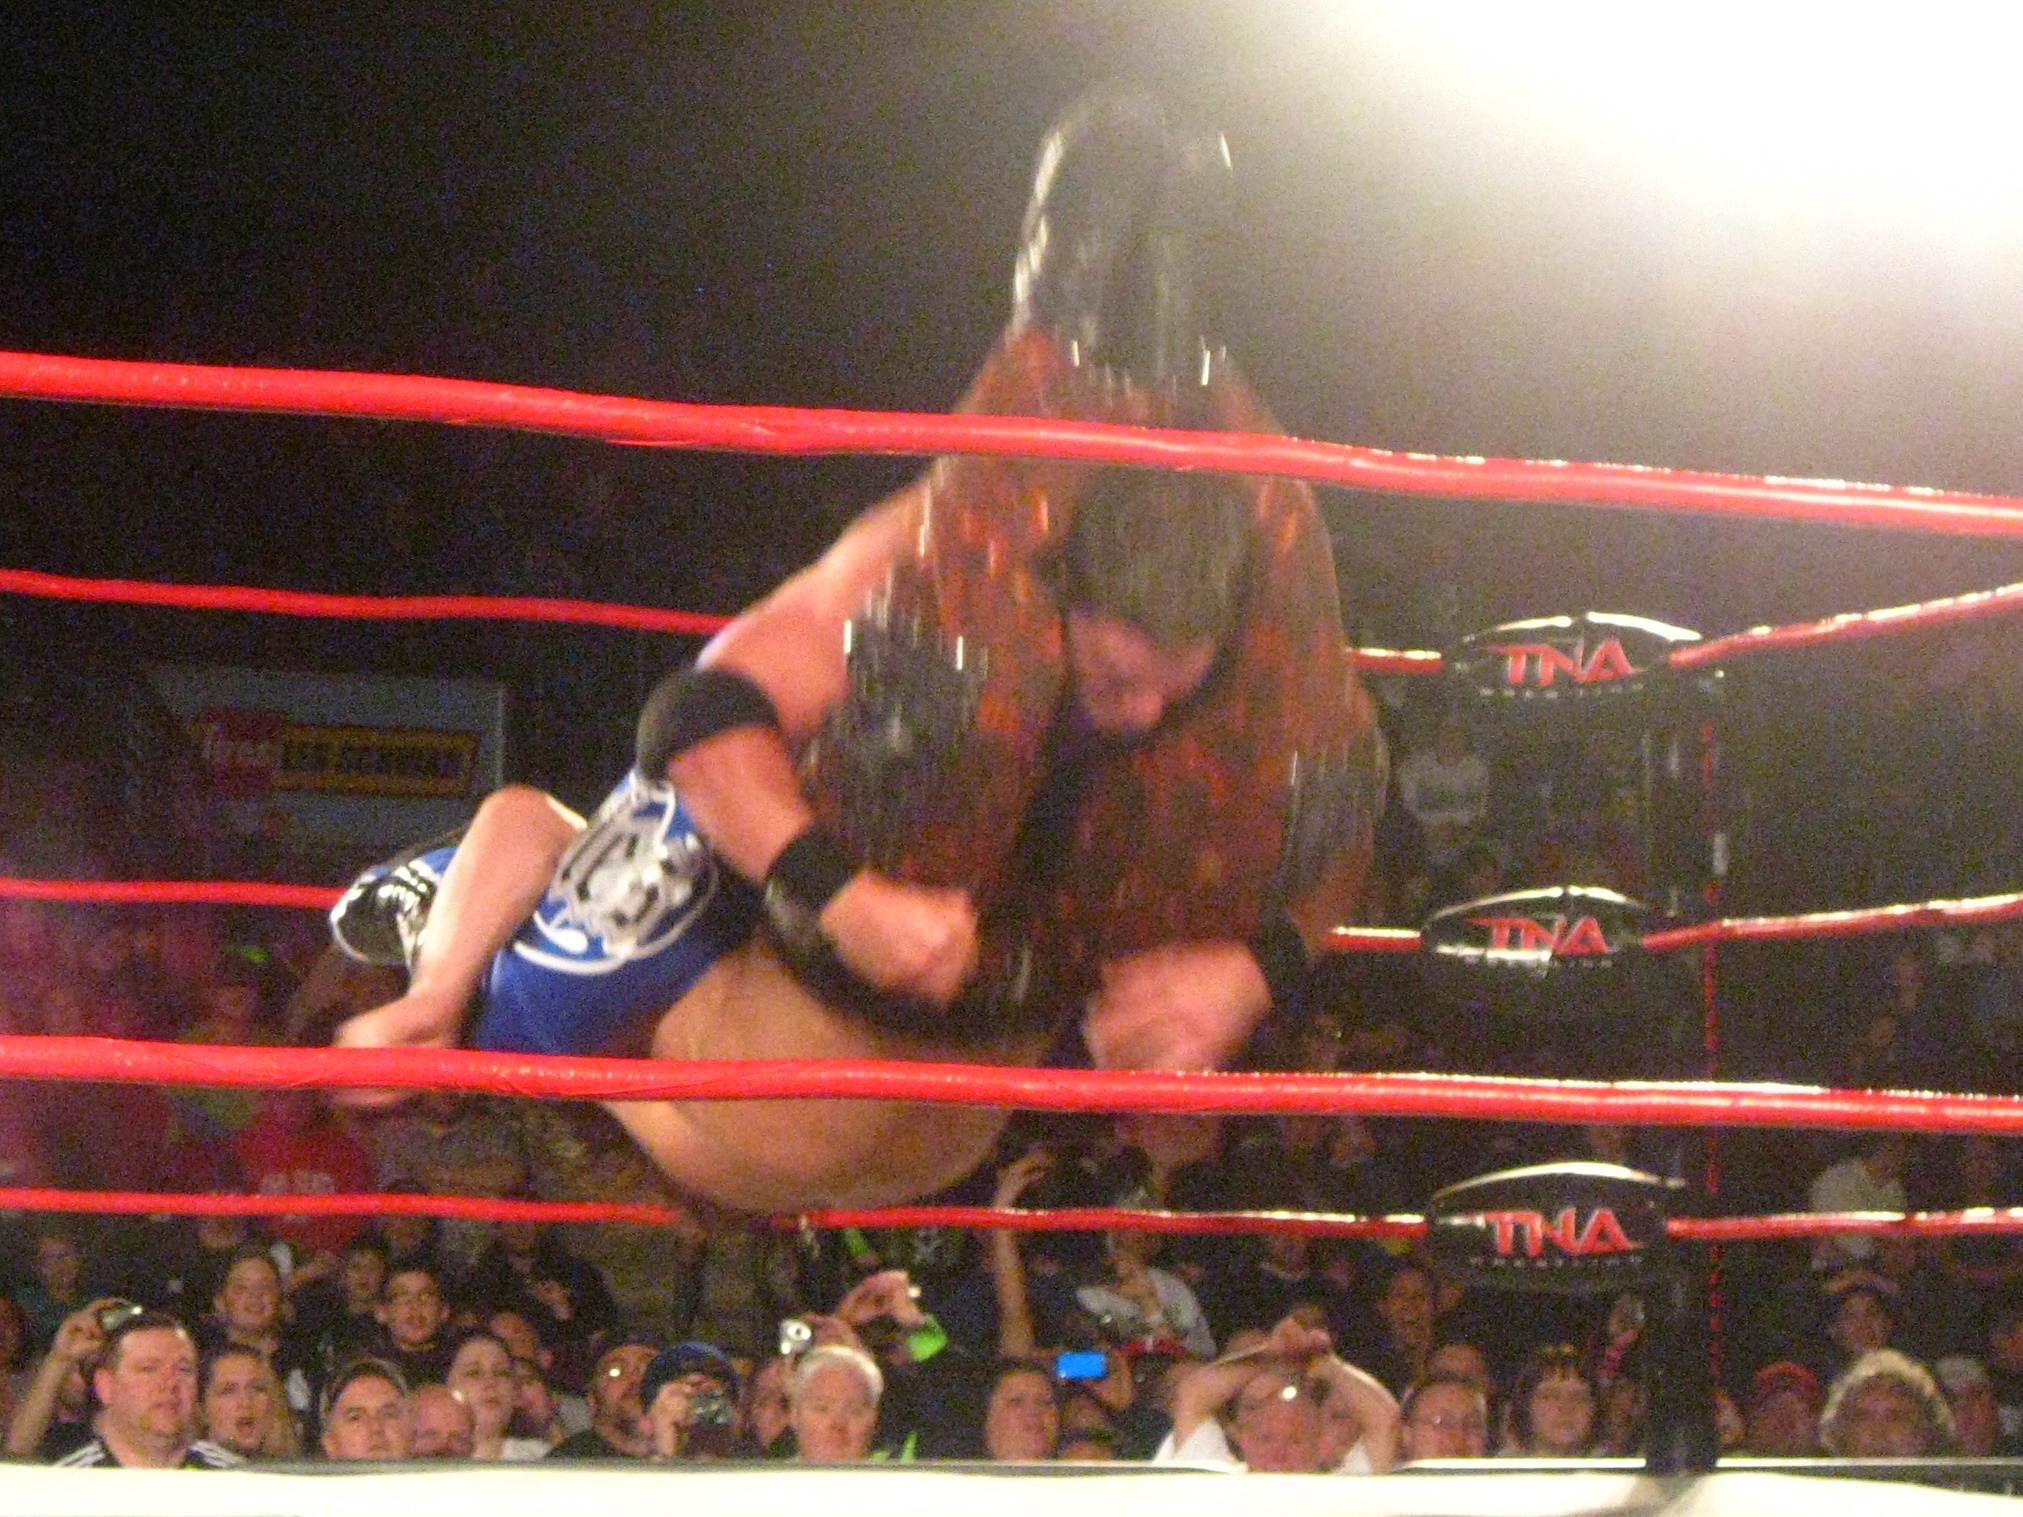 Styles performing the Styles Clash.